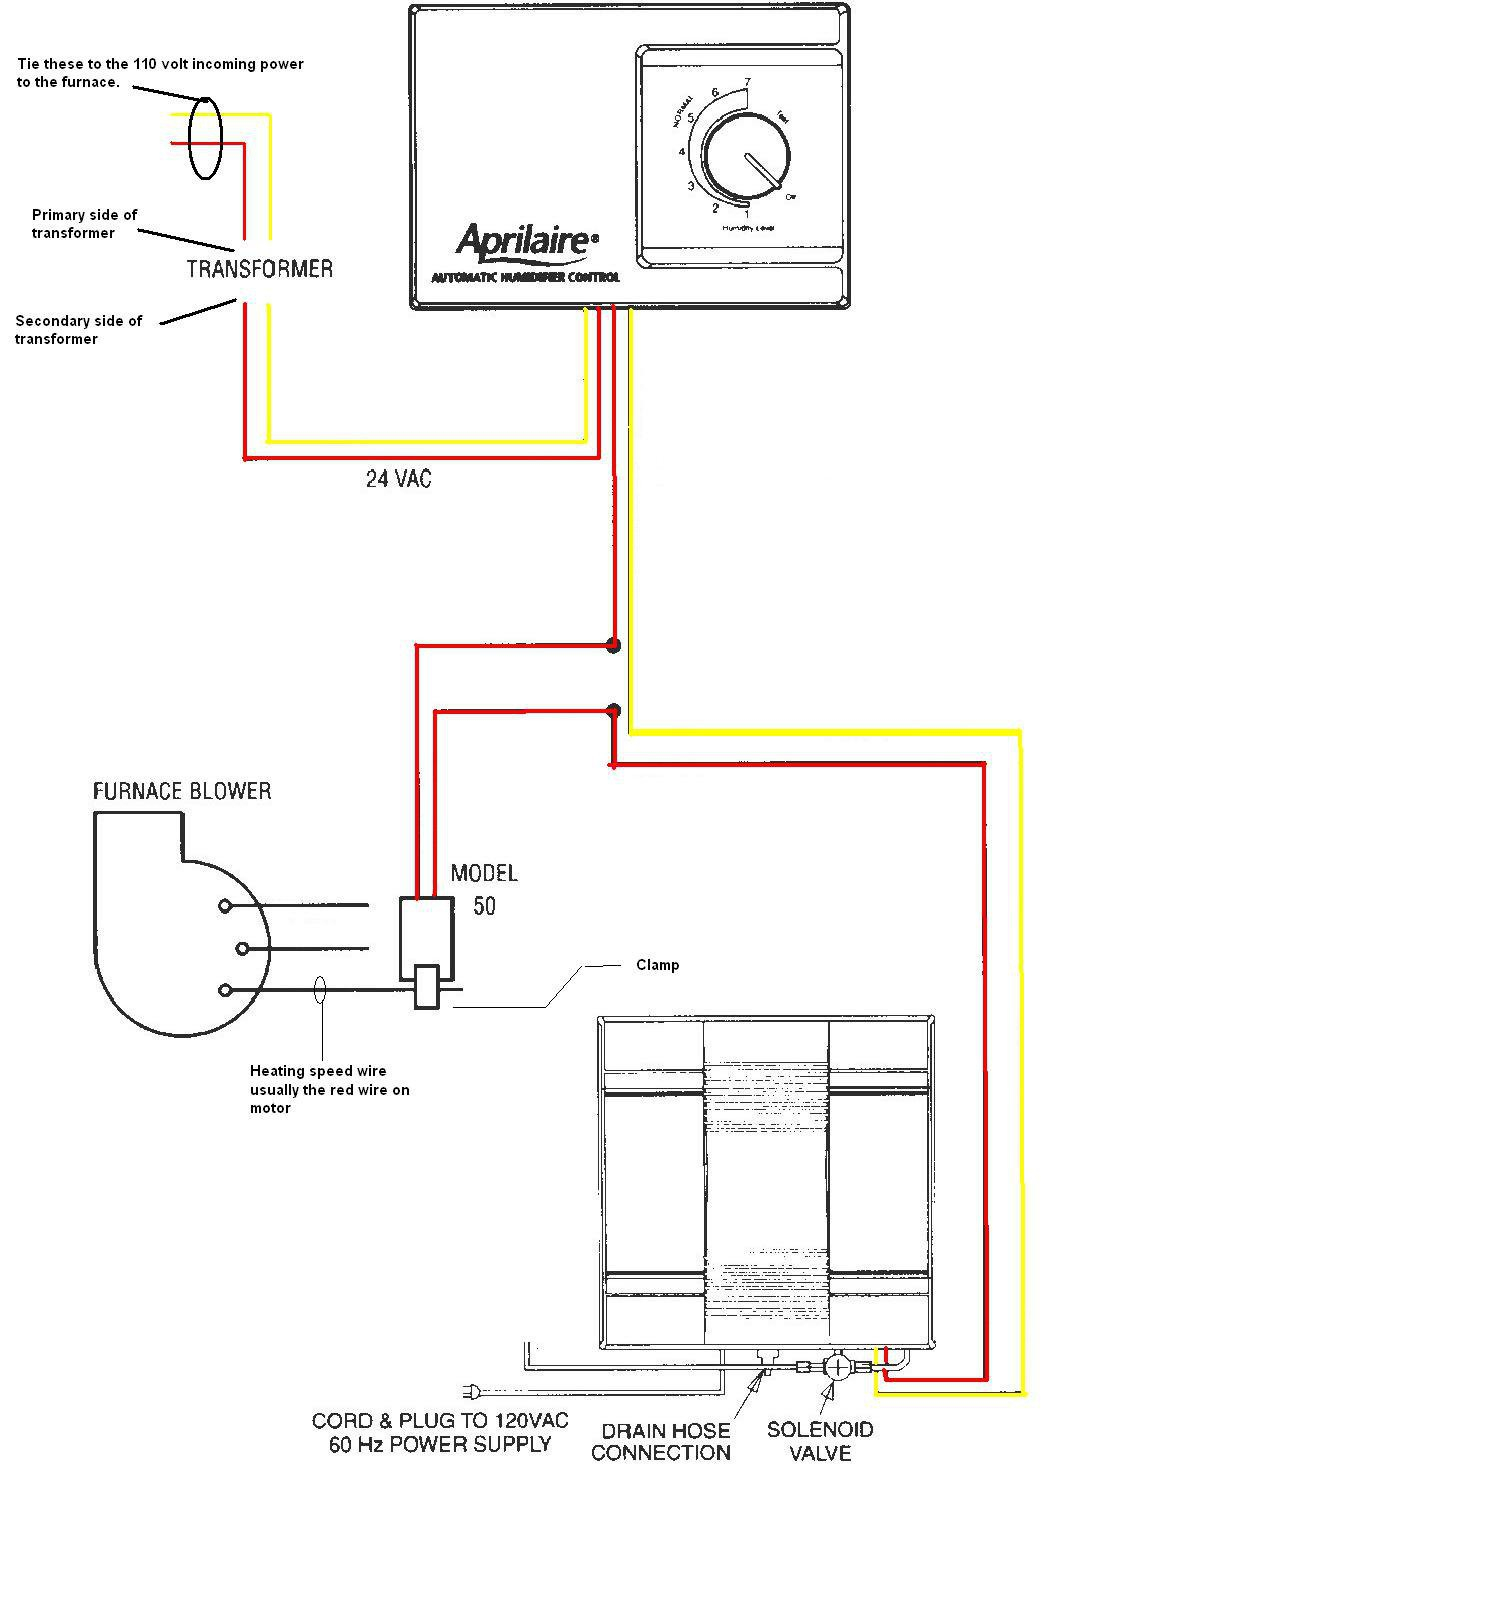 aprilaire wiring diagram Download-Ecobee Wiring Diagram Fresh Ecobee Wiring Diagram Beautiful Best Honeywell Humidifier Wiring 2-p